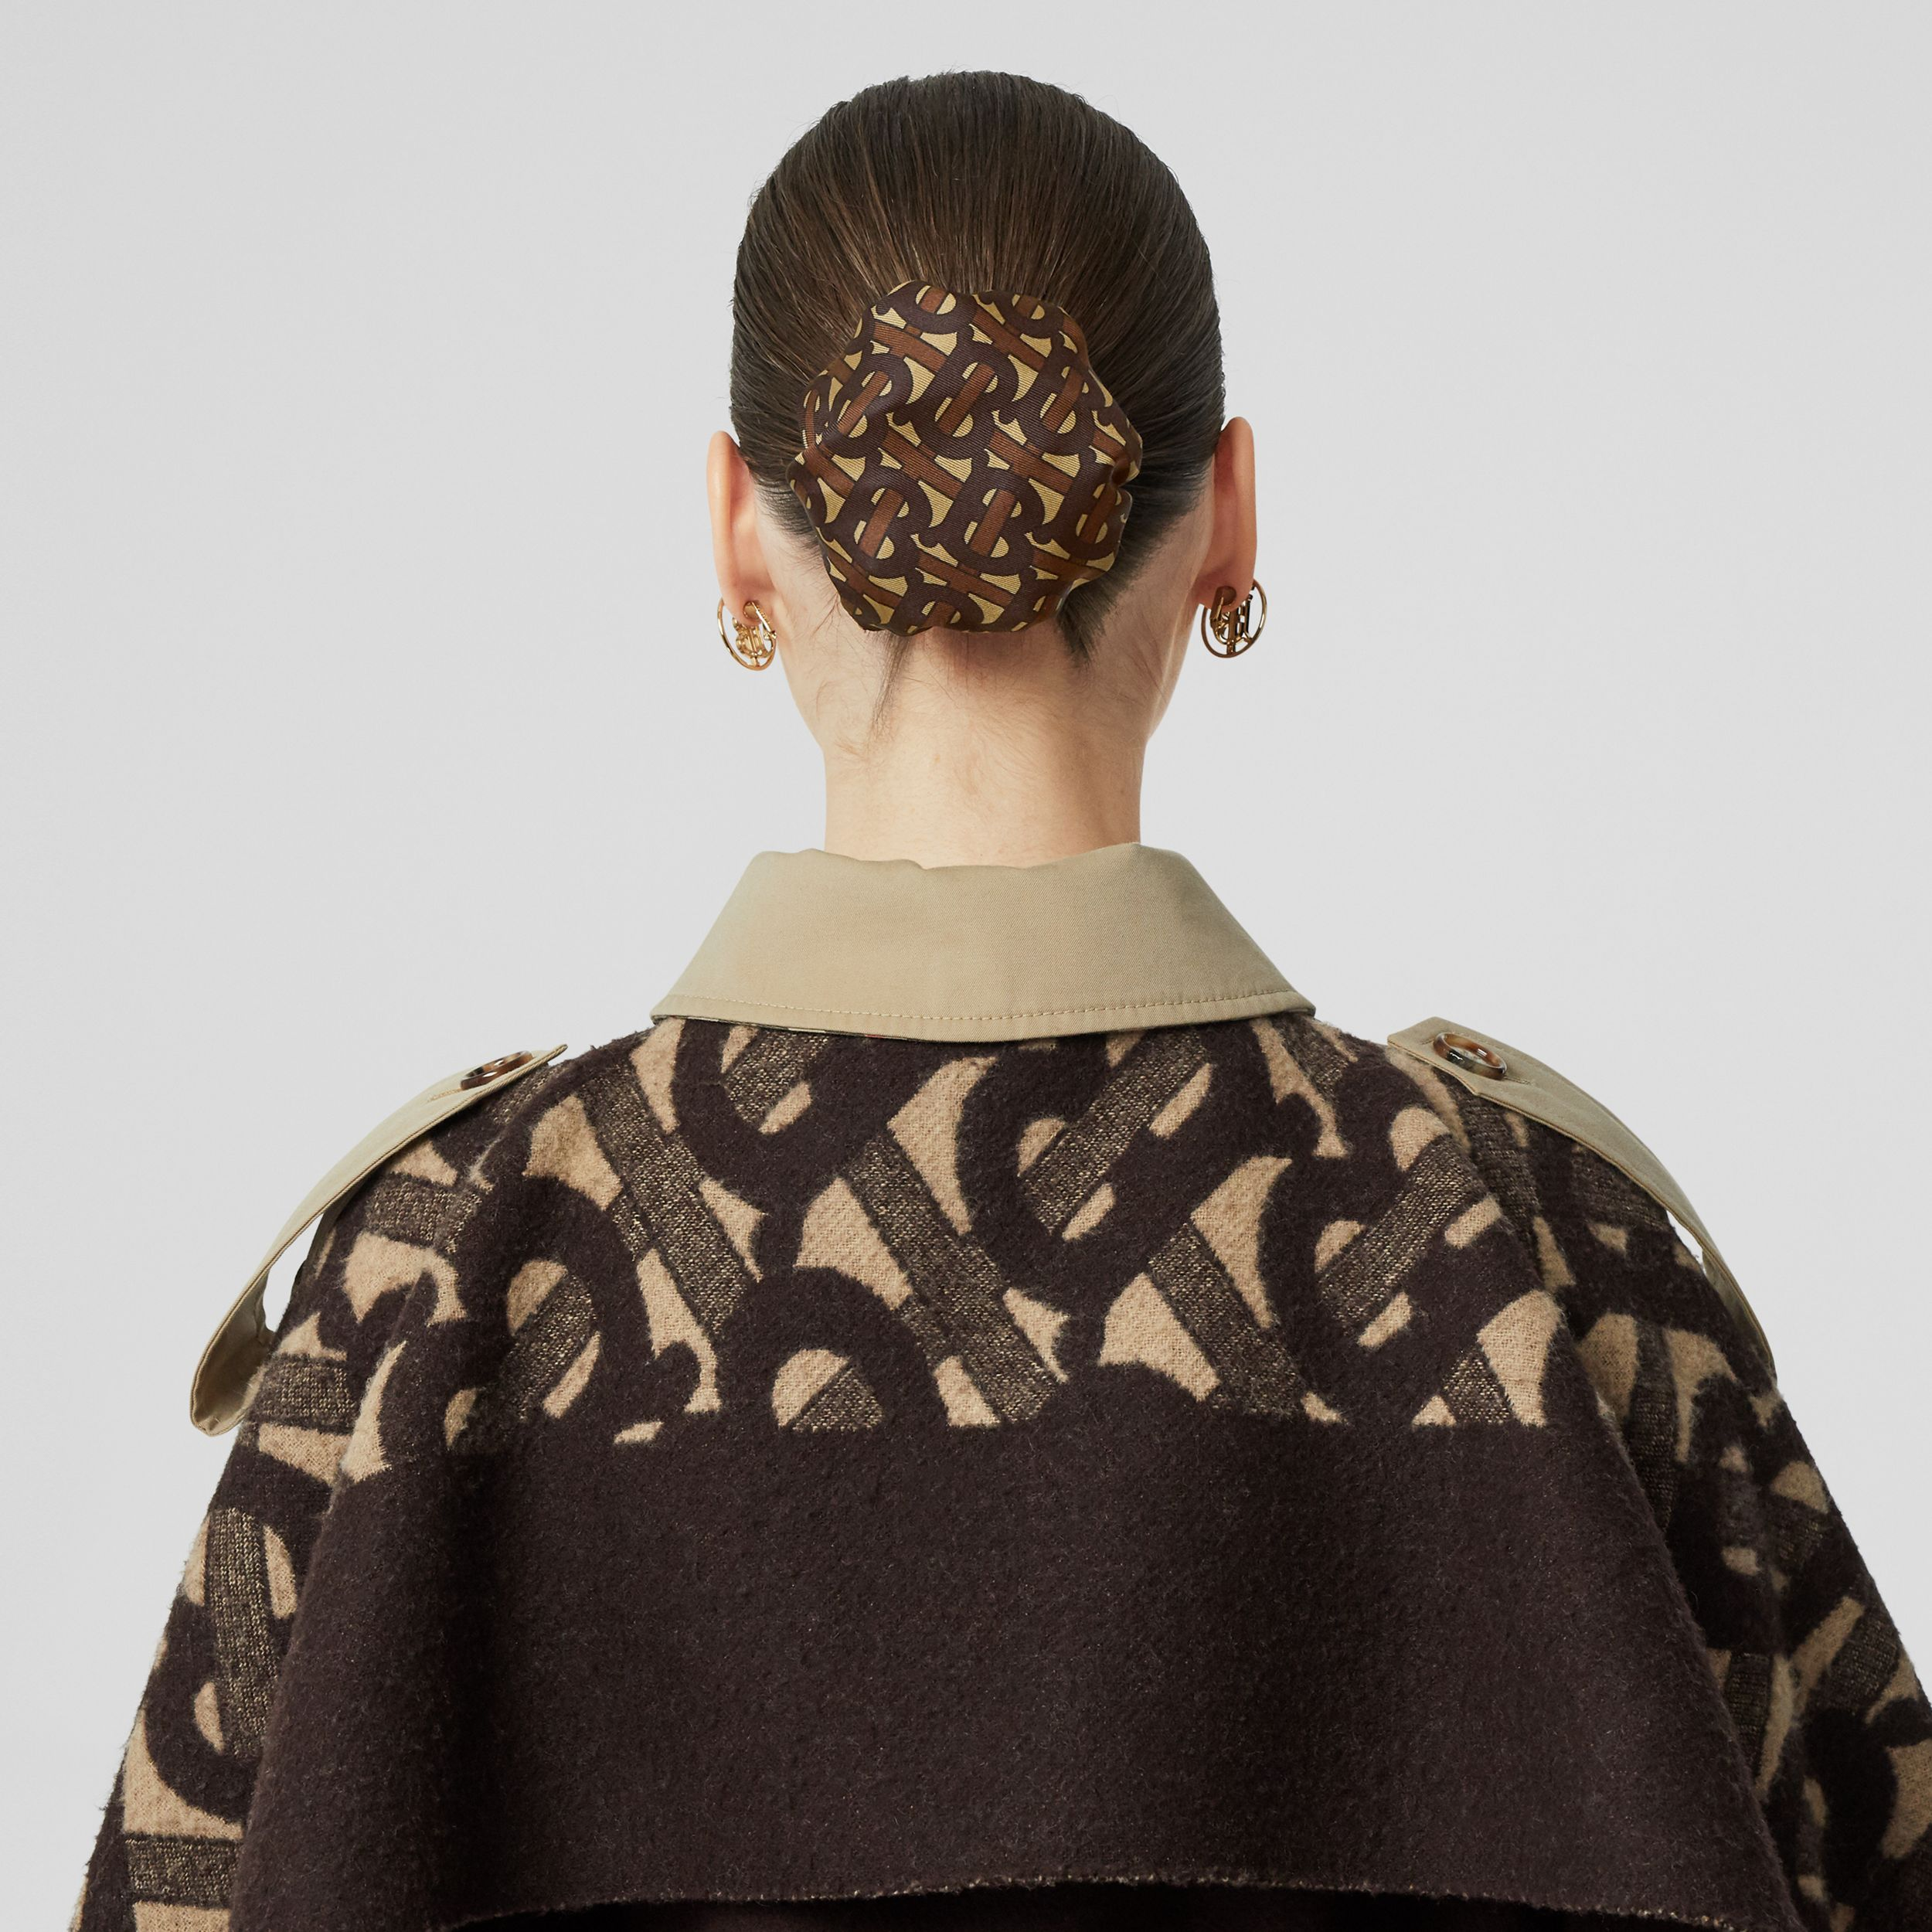 Monogram Print Silk Chignon Cover in Brown | Burberry - 3